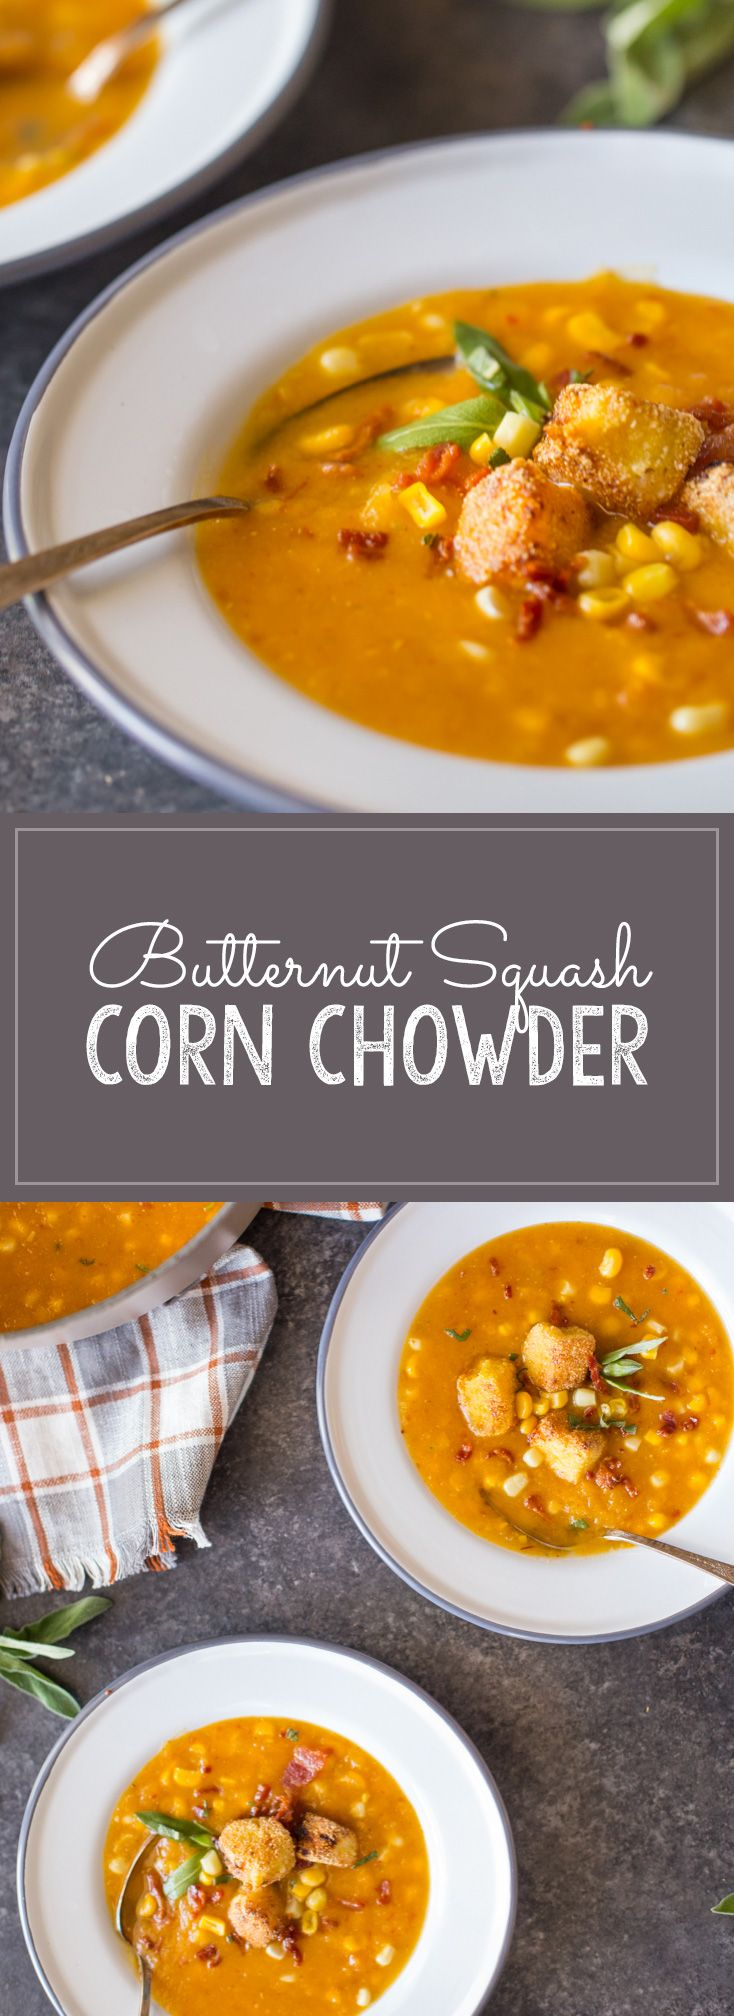 ... Corn Chowder with Goat Cheese Croutons | Recipe | Bacon, Sweet corn